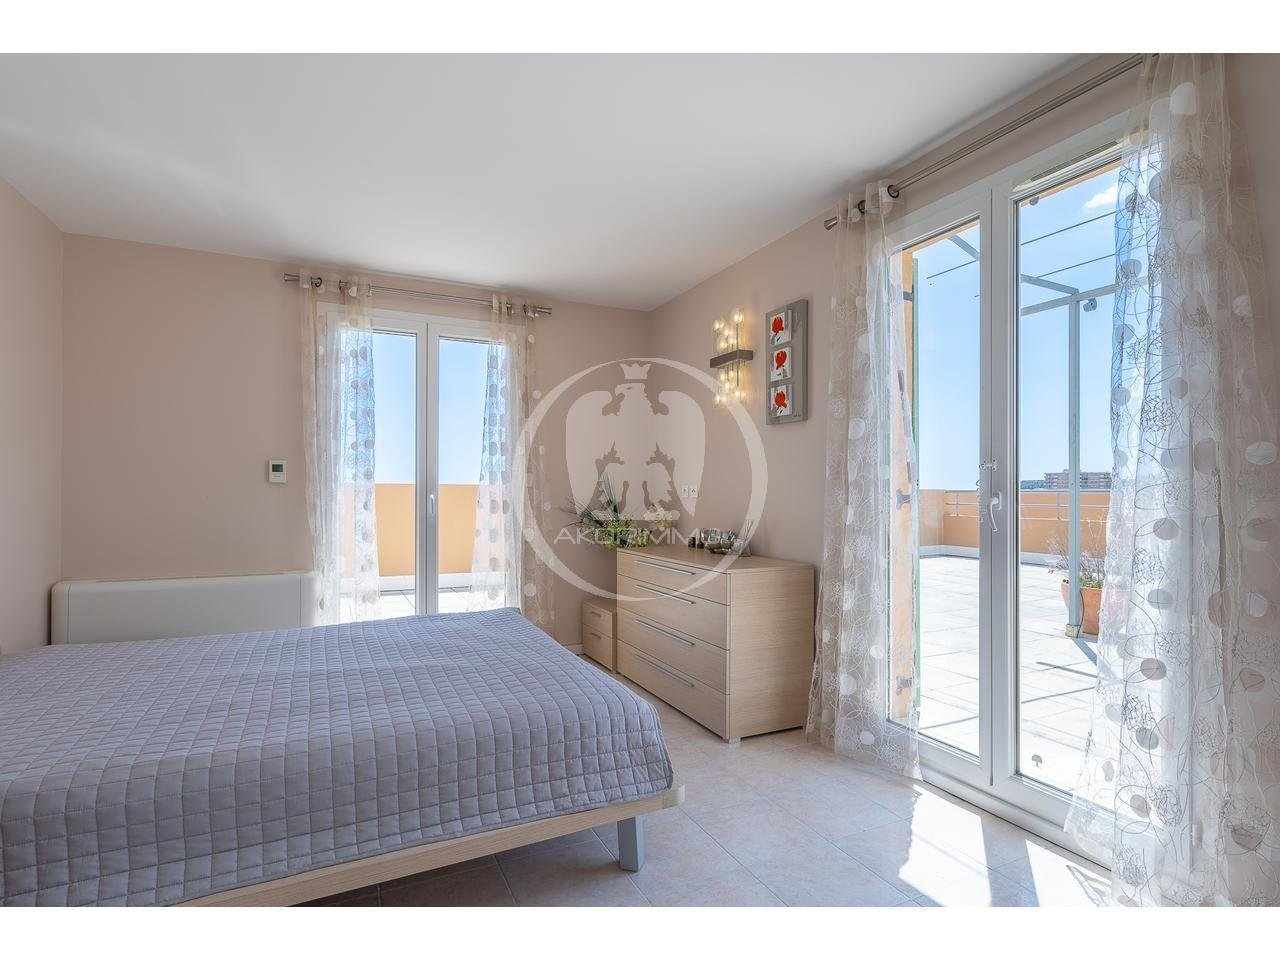 Maison  6 Rooms 197m2  for sale  1 800 000 €